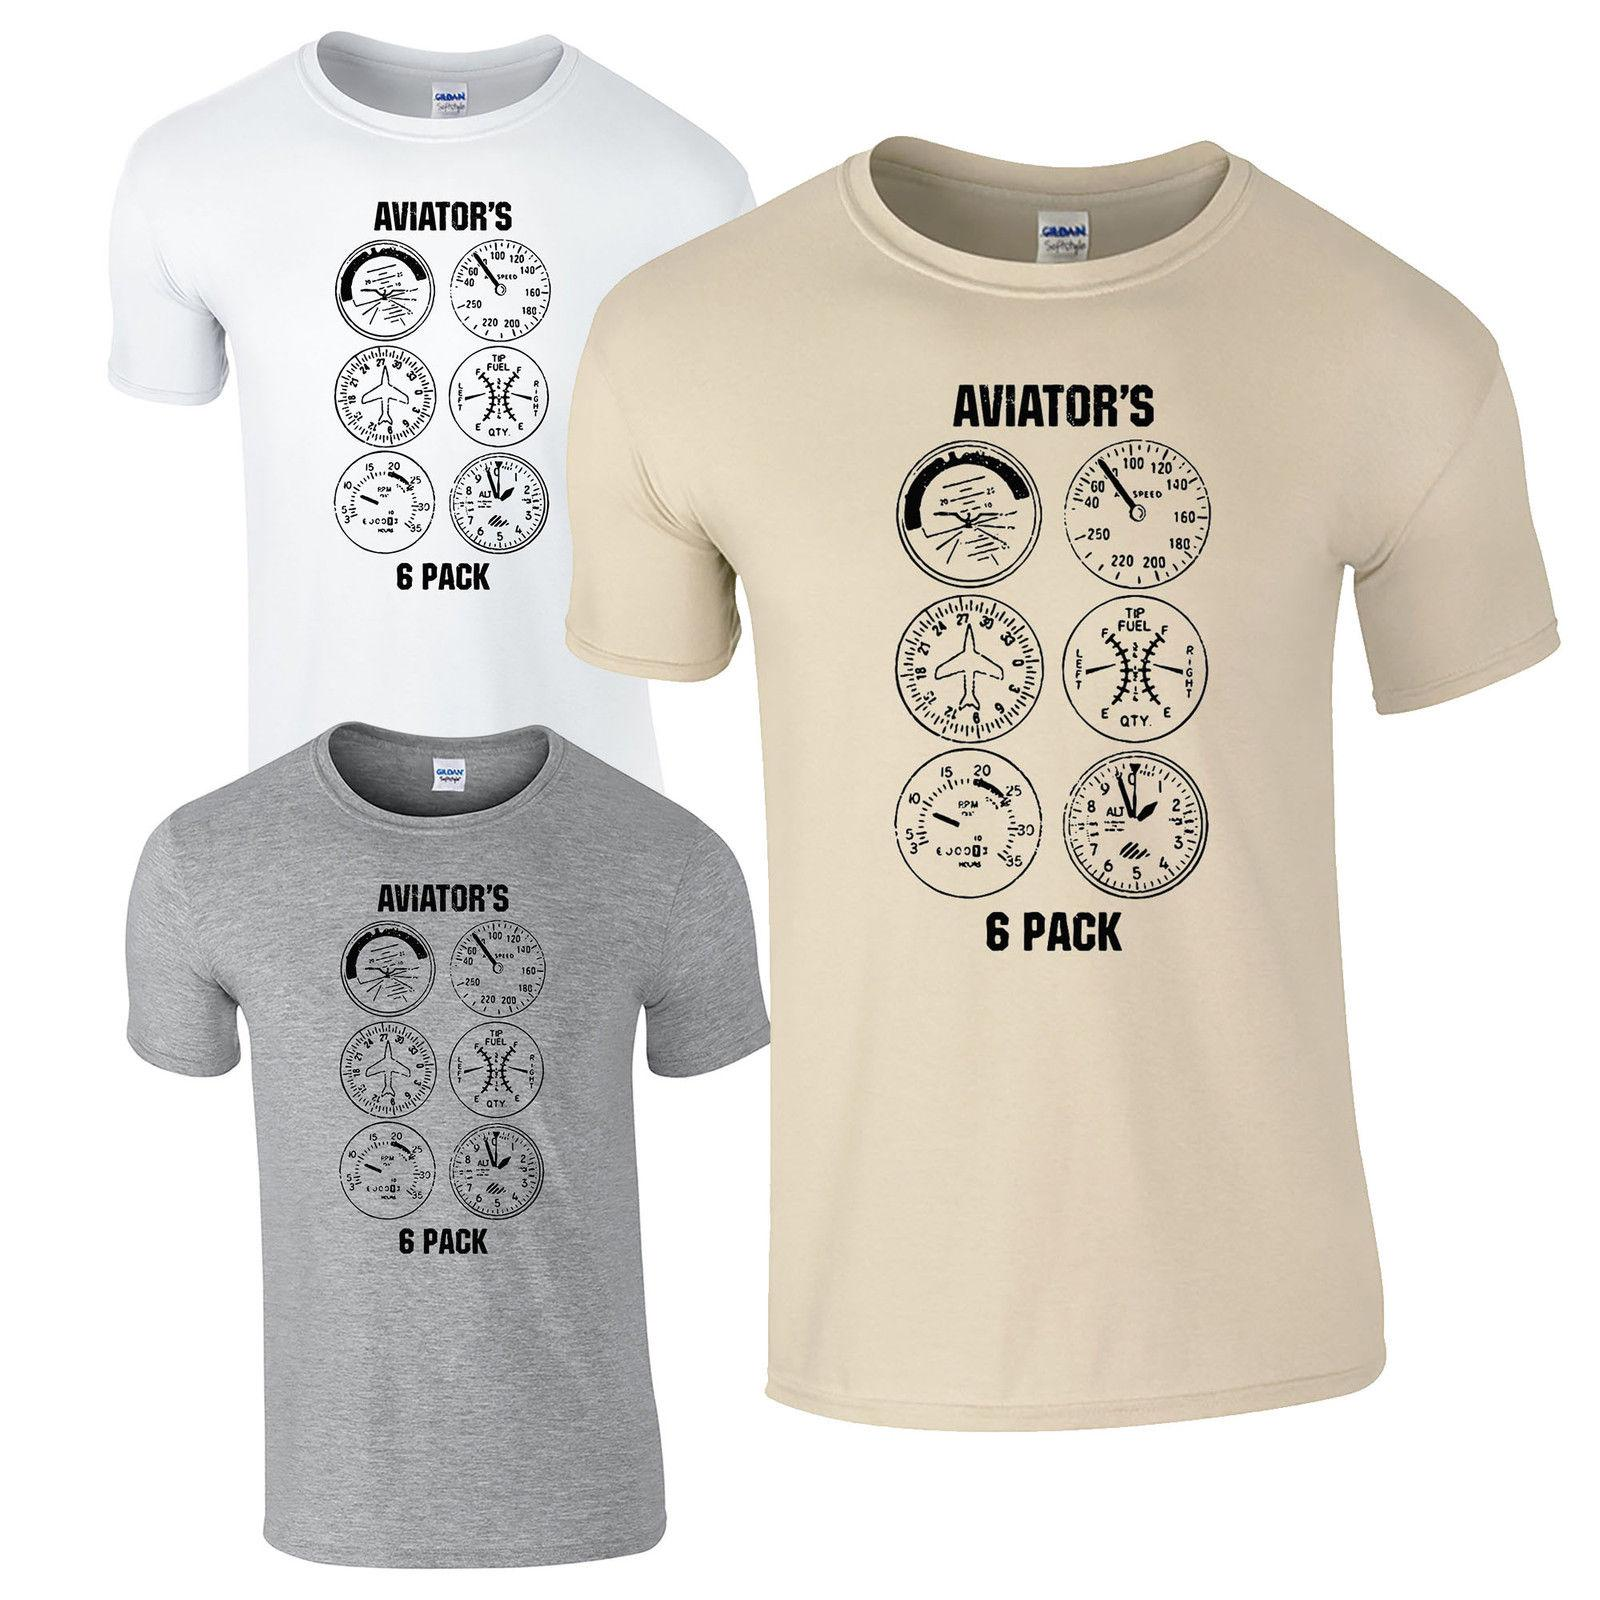 a2de7ec57 Aviator's Six Pack T-Shirt - Aeroplane Aircraft Plane Dials Pilot Gift Mens  Top Funny free shipping Unisex Casual Tshirt. Store-wide Discount